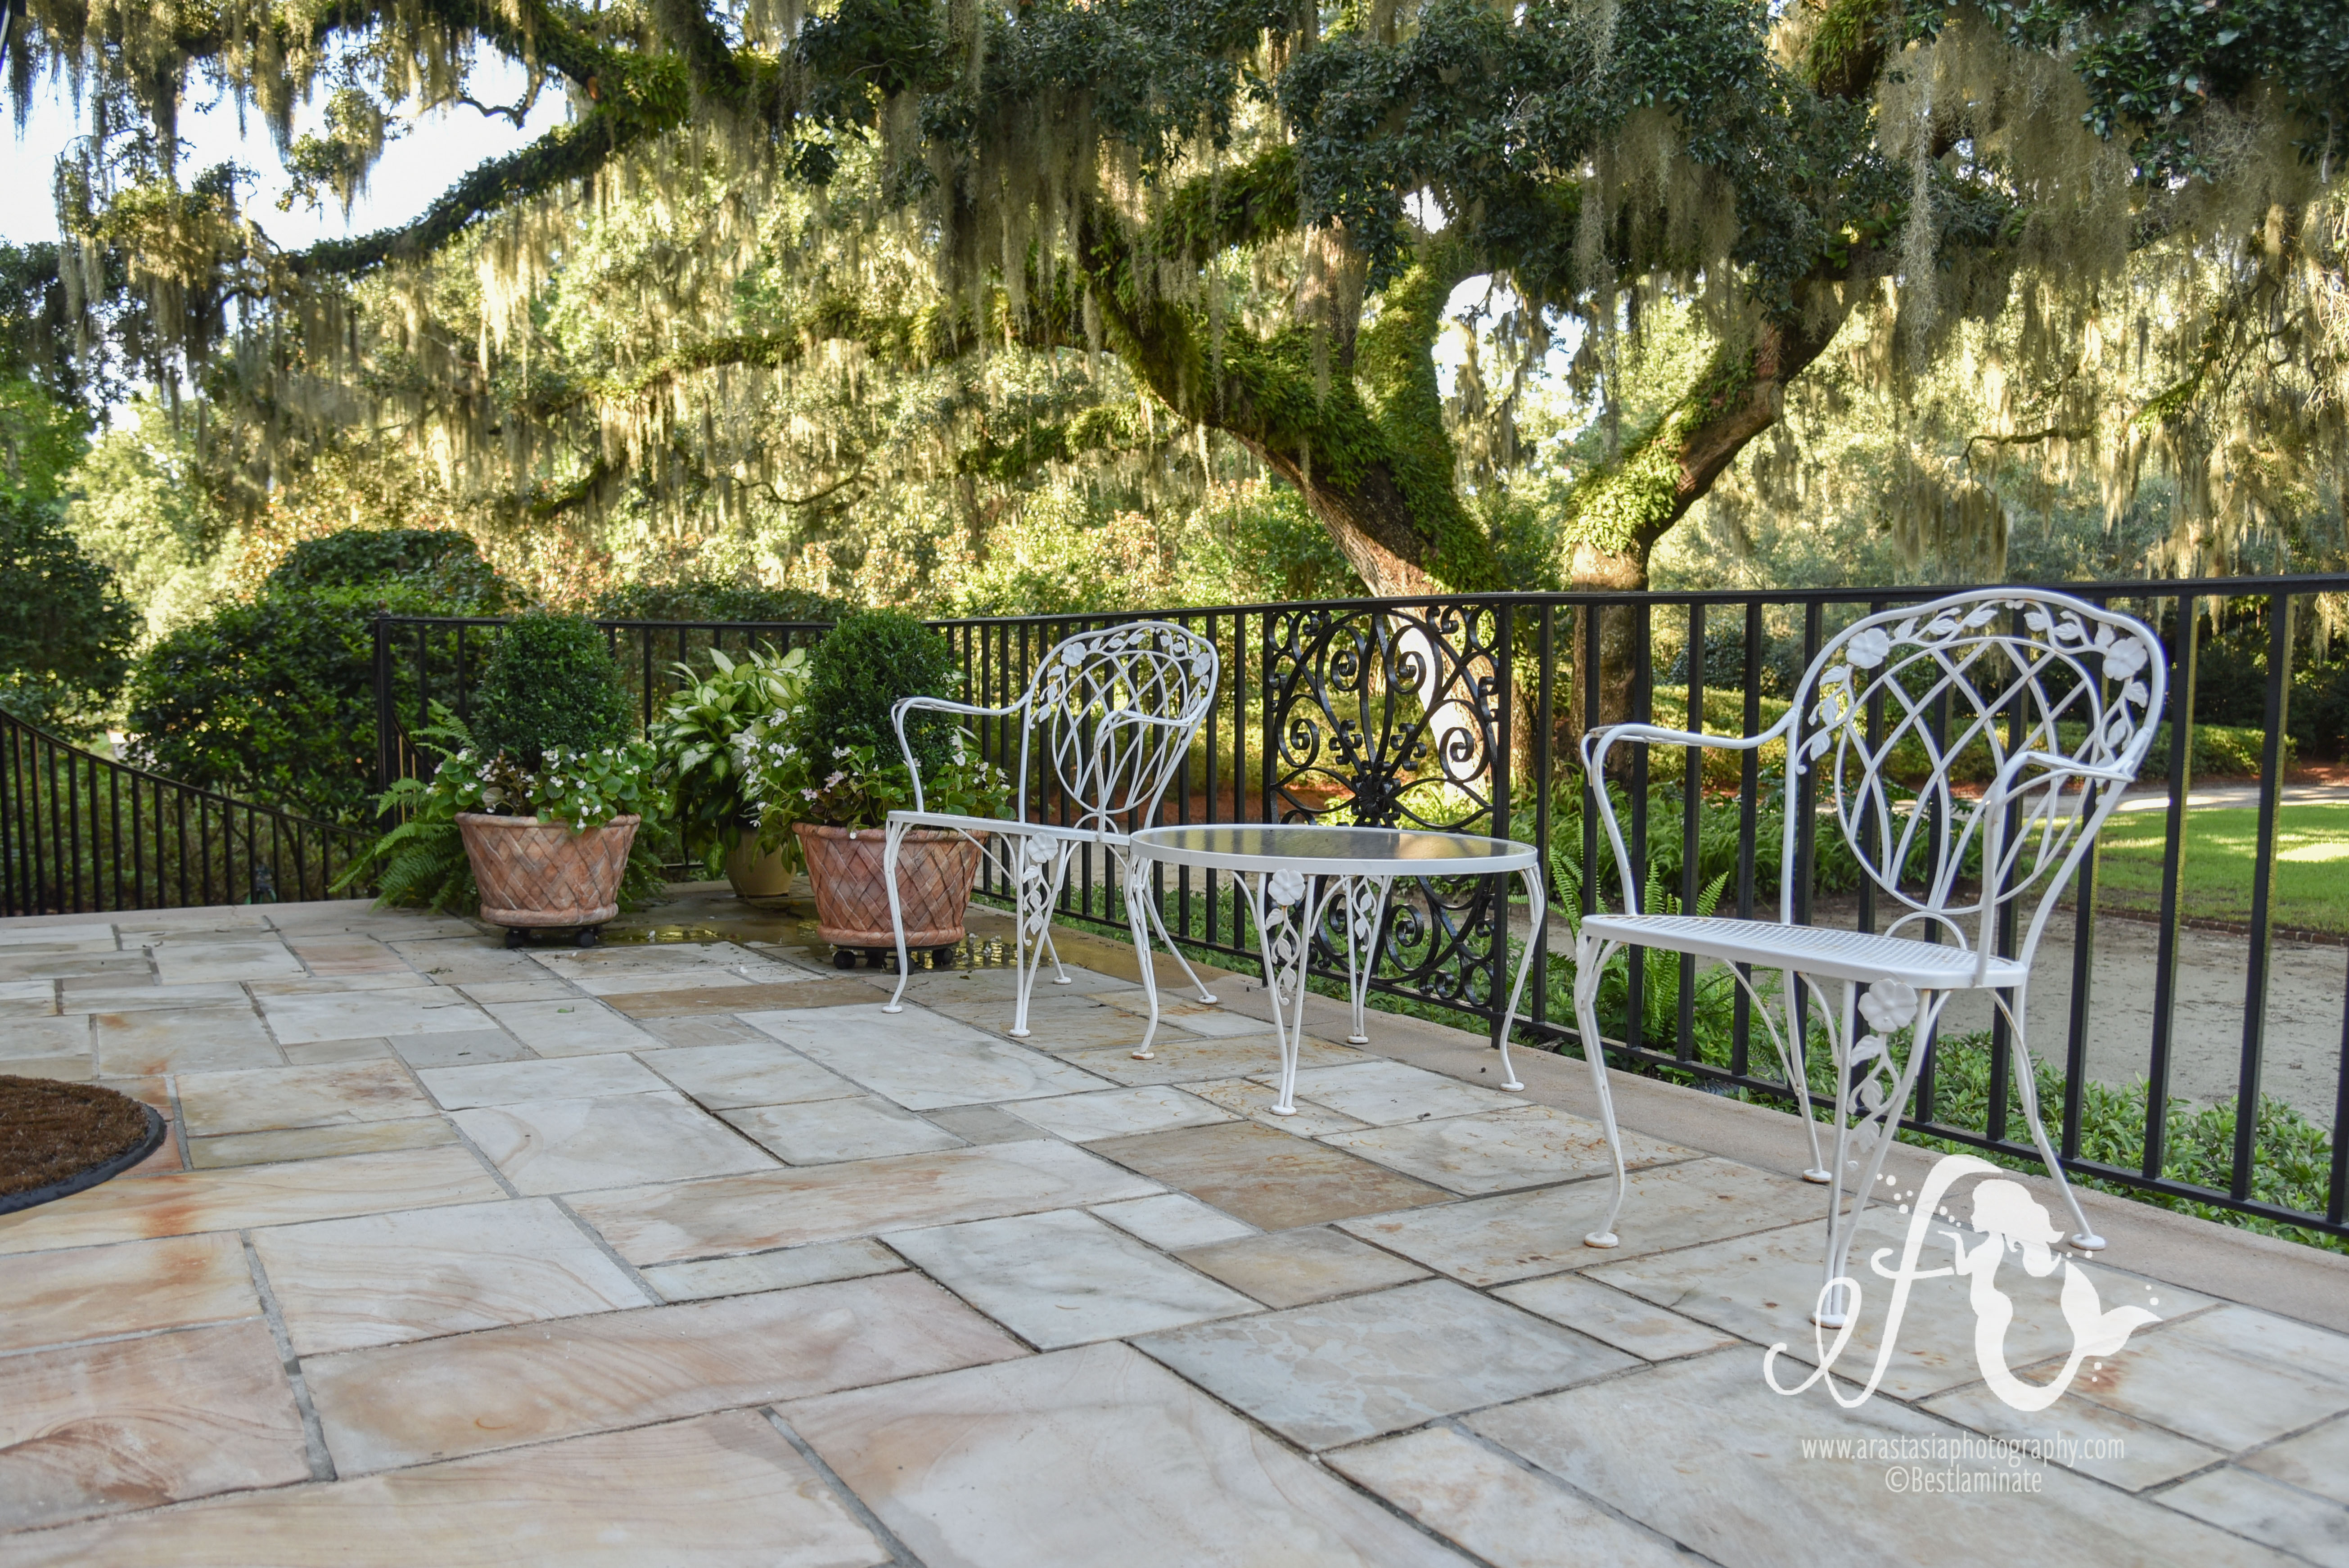 The Historic Beauty of a Southern Plantation Home on southern furniture ideas, southern apartment ideas, southern decorating ideas, southern birthday ideas, southern landscape design ideas, southern picnic ideas, southern gardening ideas, southern porches, southern office ideas, southern christmas ideas, southern vacation ideas, southern bedroom ideas, southern bbq ideas, southern cooking ideas, southern carpet ideas, southern nursery ideas, southern garden ideas,